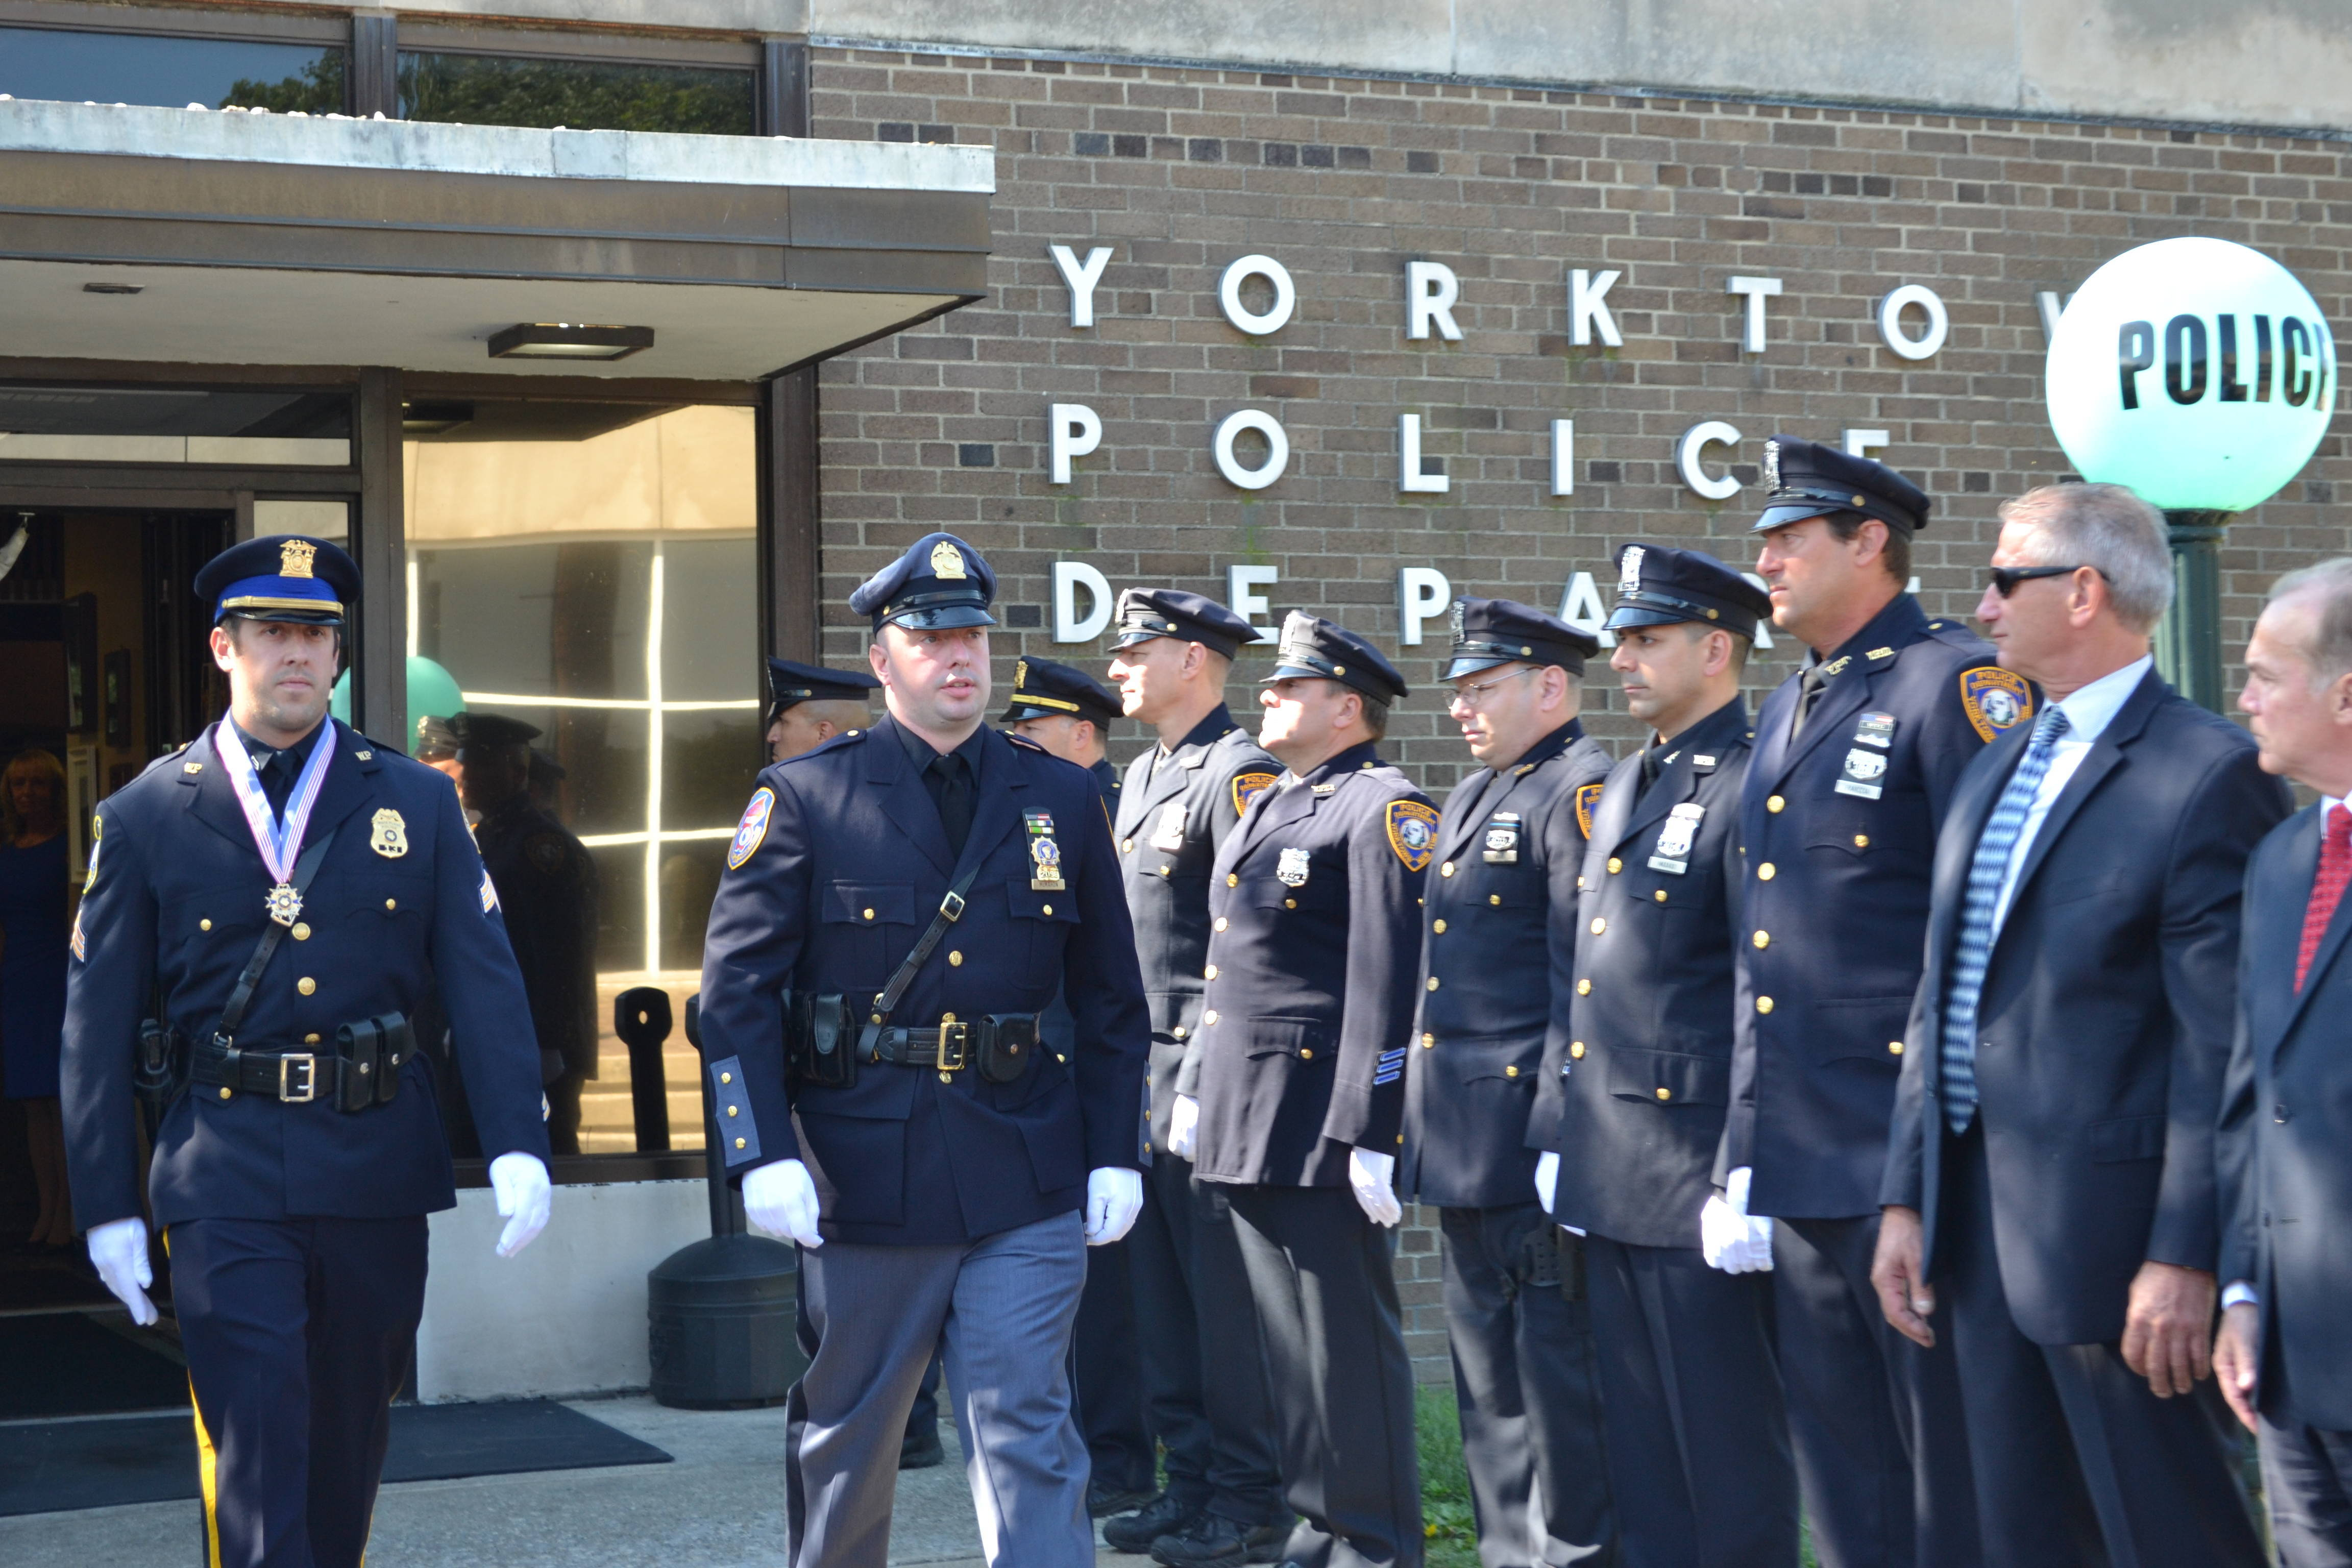 chief mcmahon retires after 35 years with yorktown police